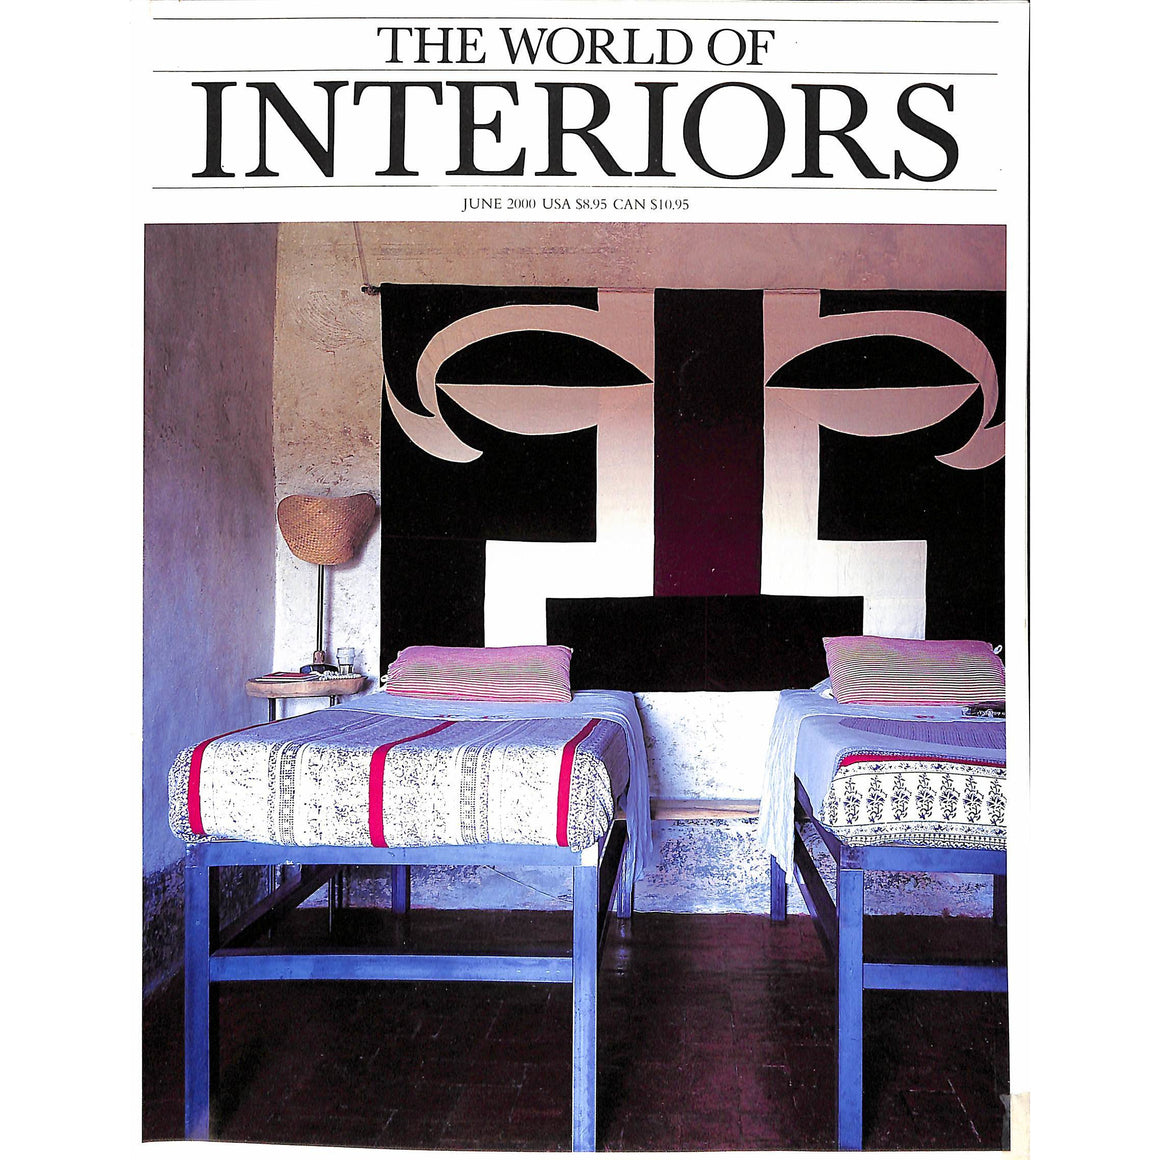 'The World of Interiors June 2000'